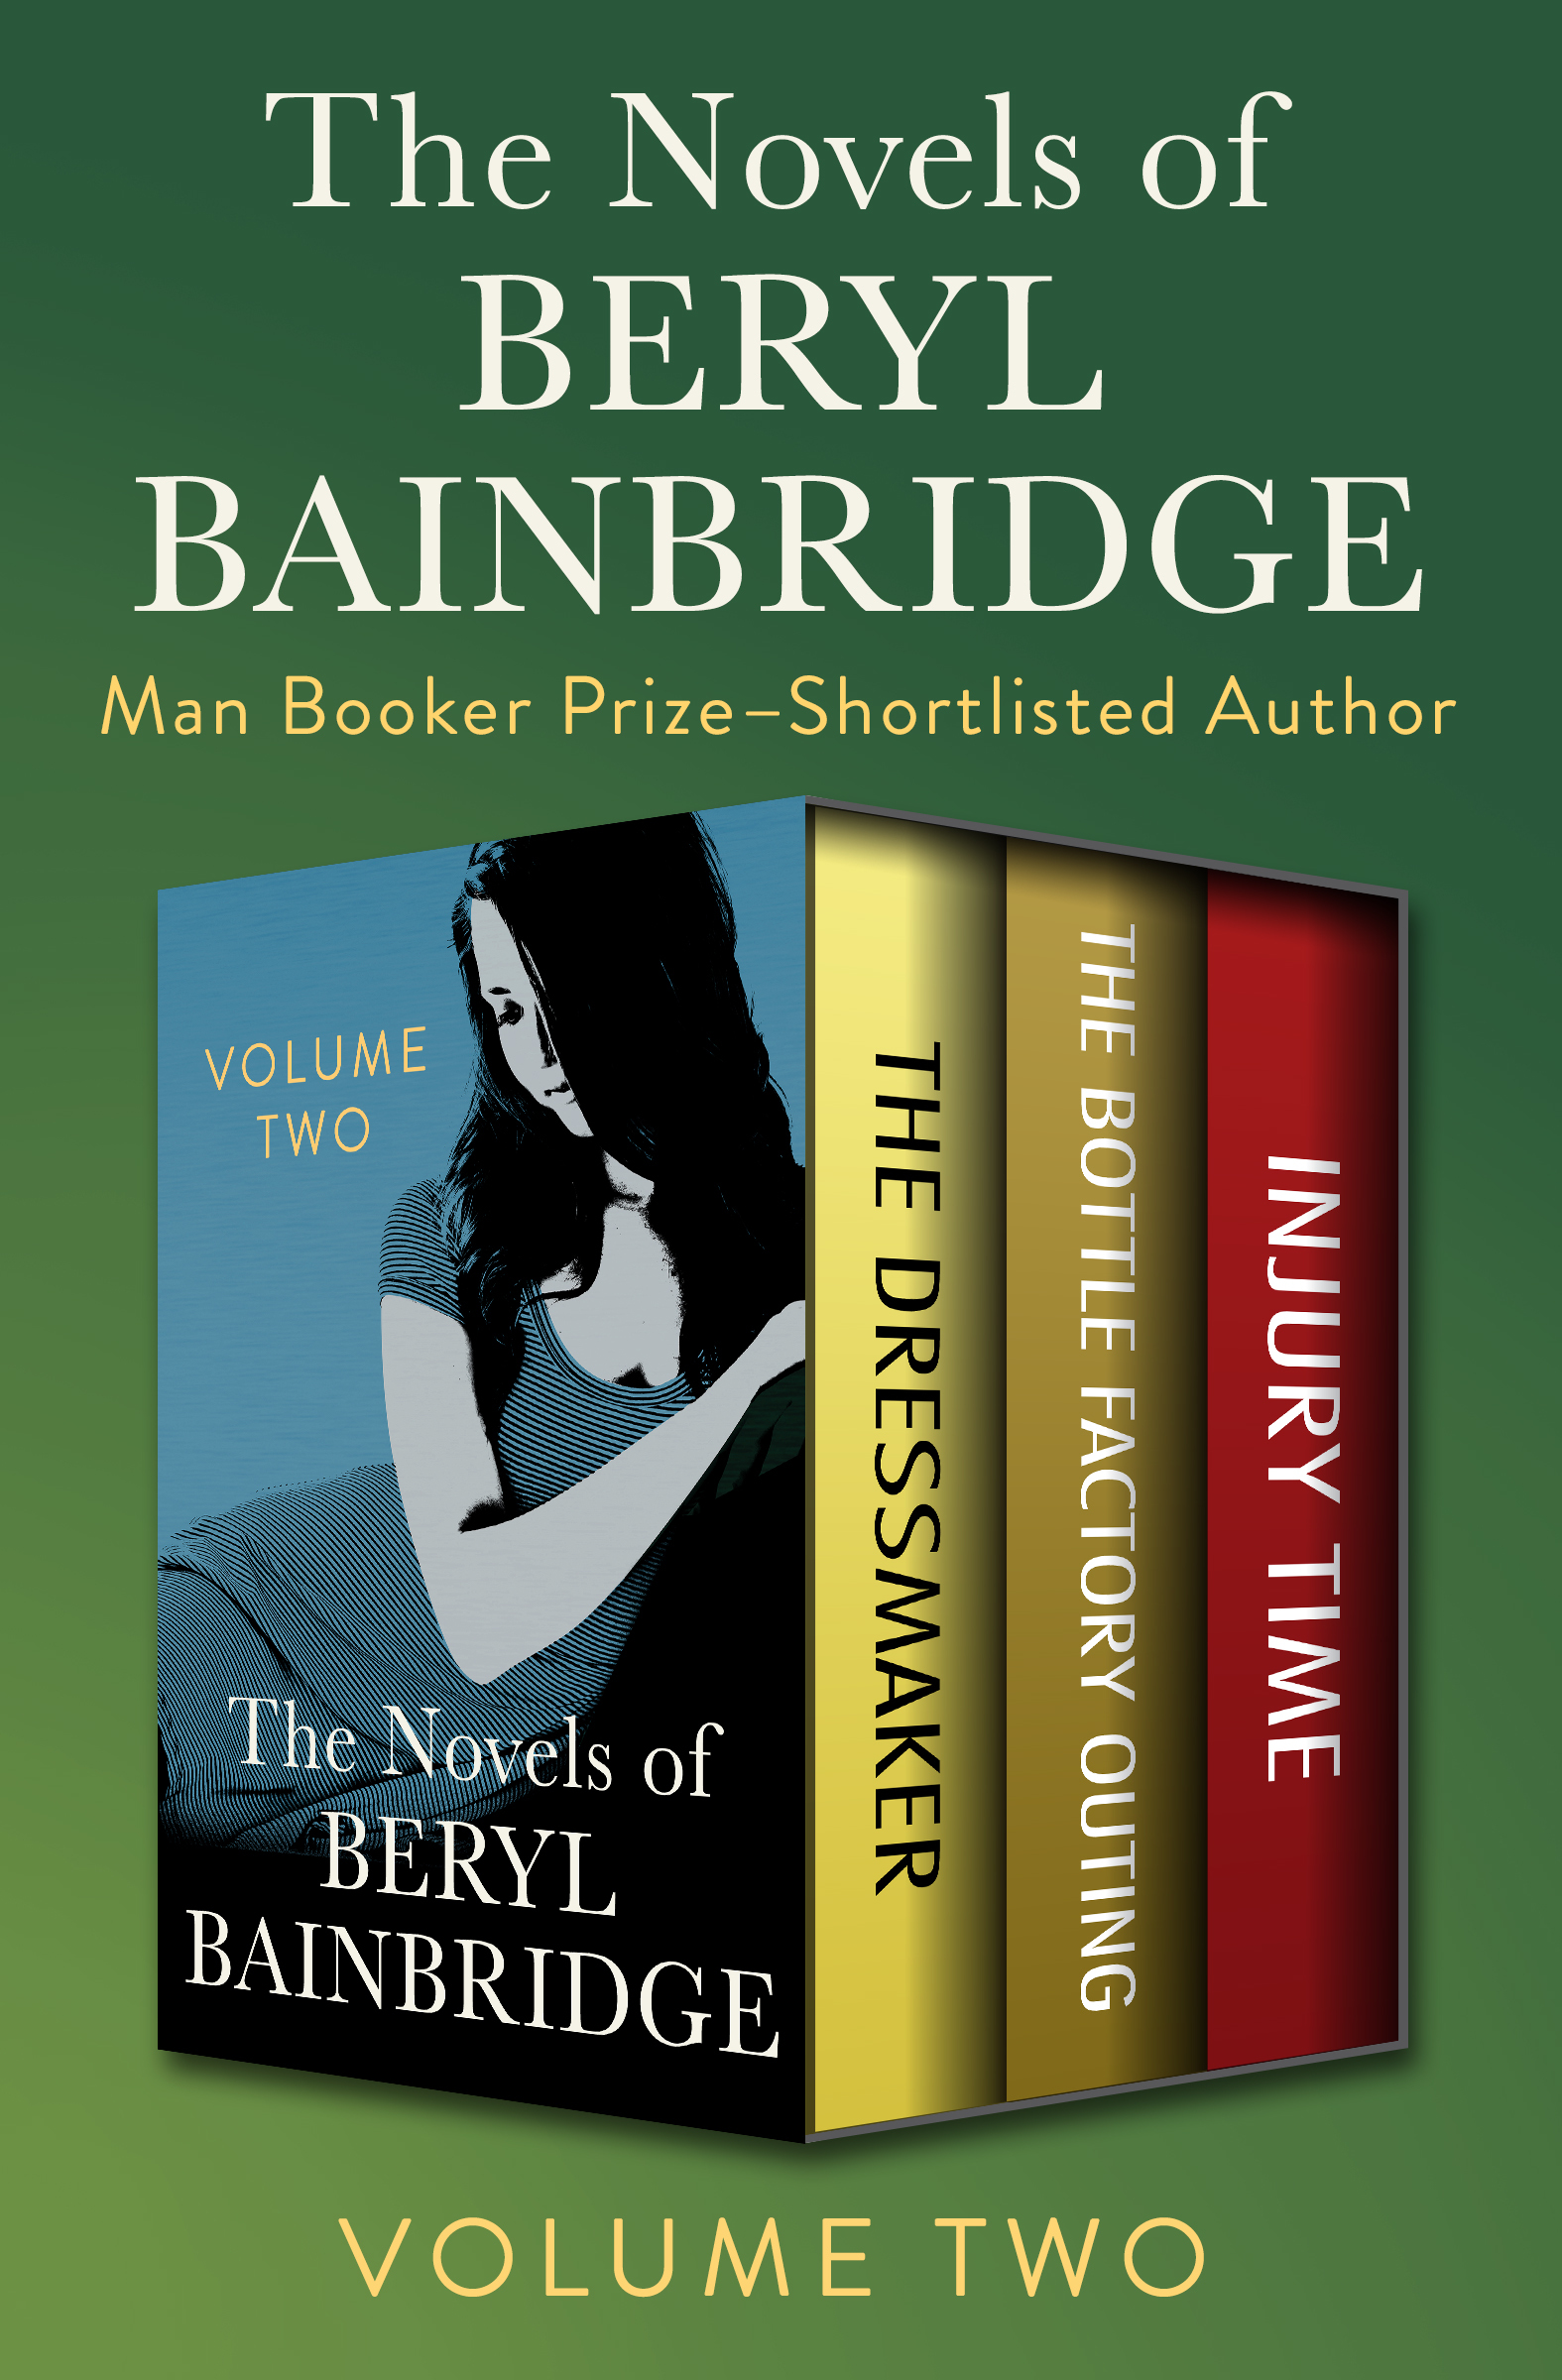 The Novels of Beryl Bainbridge Volume Two: The Dressmaker, The Bottle Factory Outing, and Injury Time